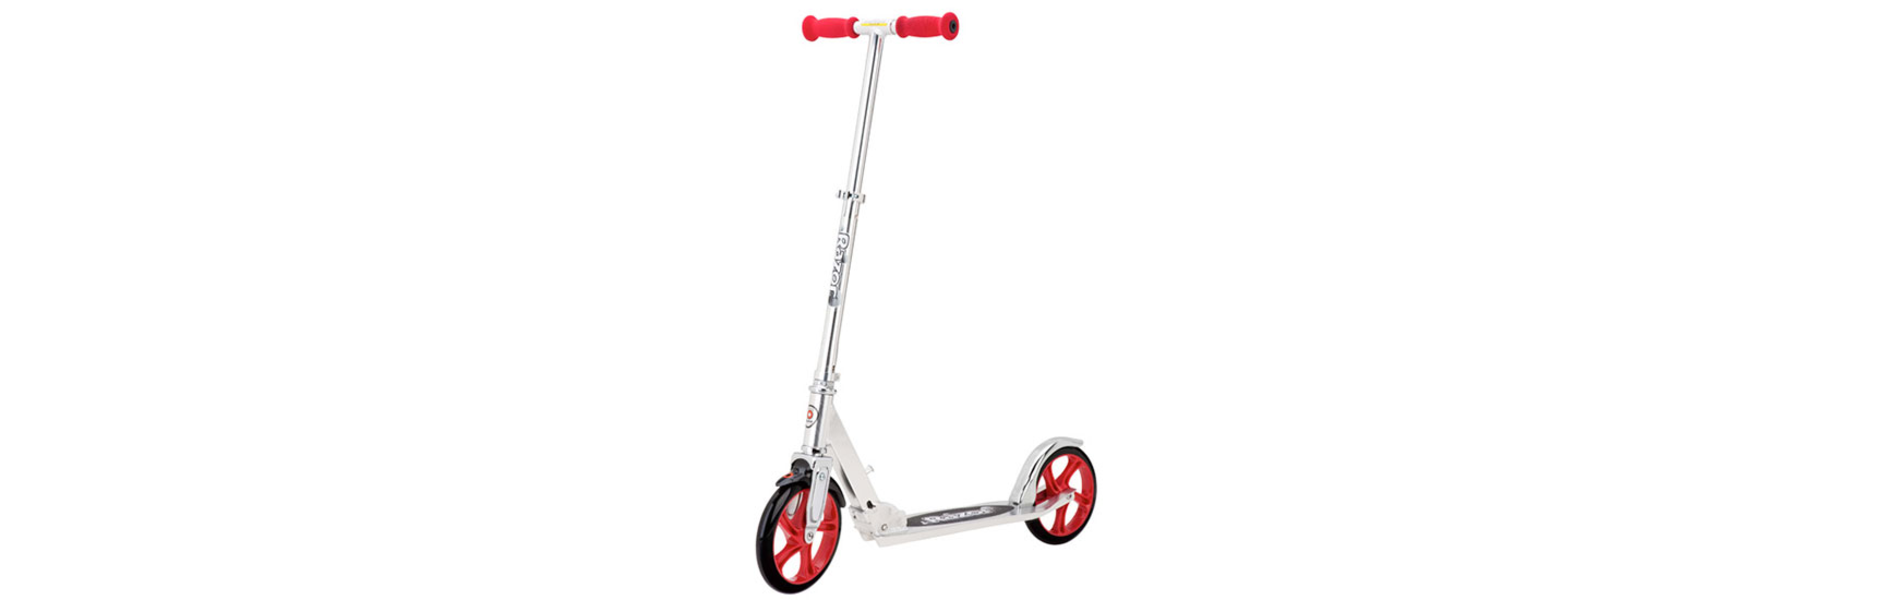 A5 LUX SCOOTER - SILVER